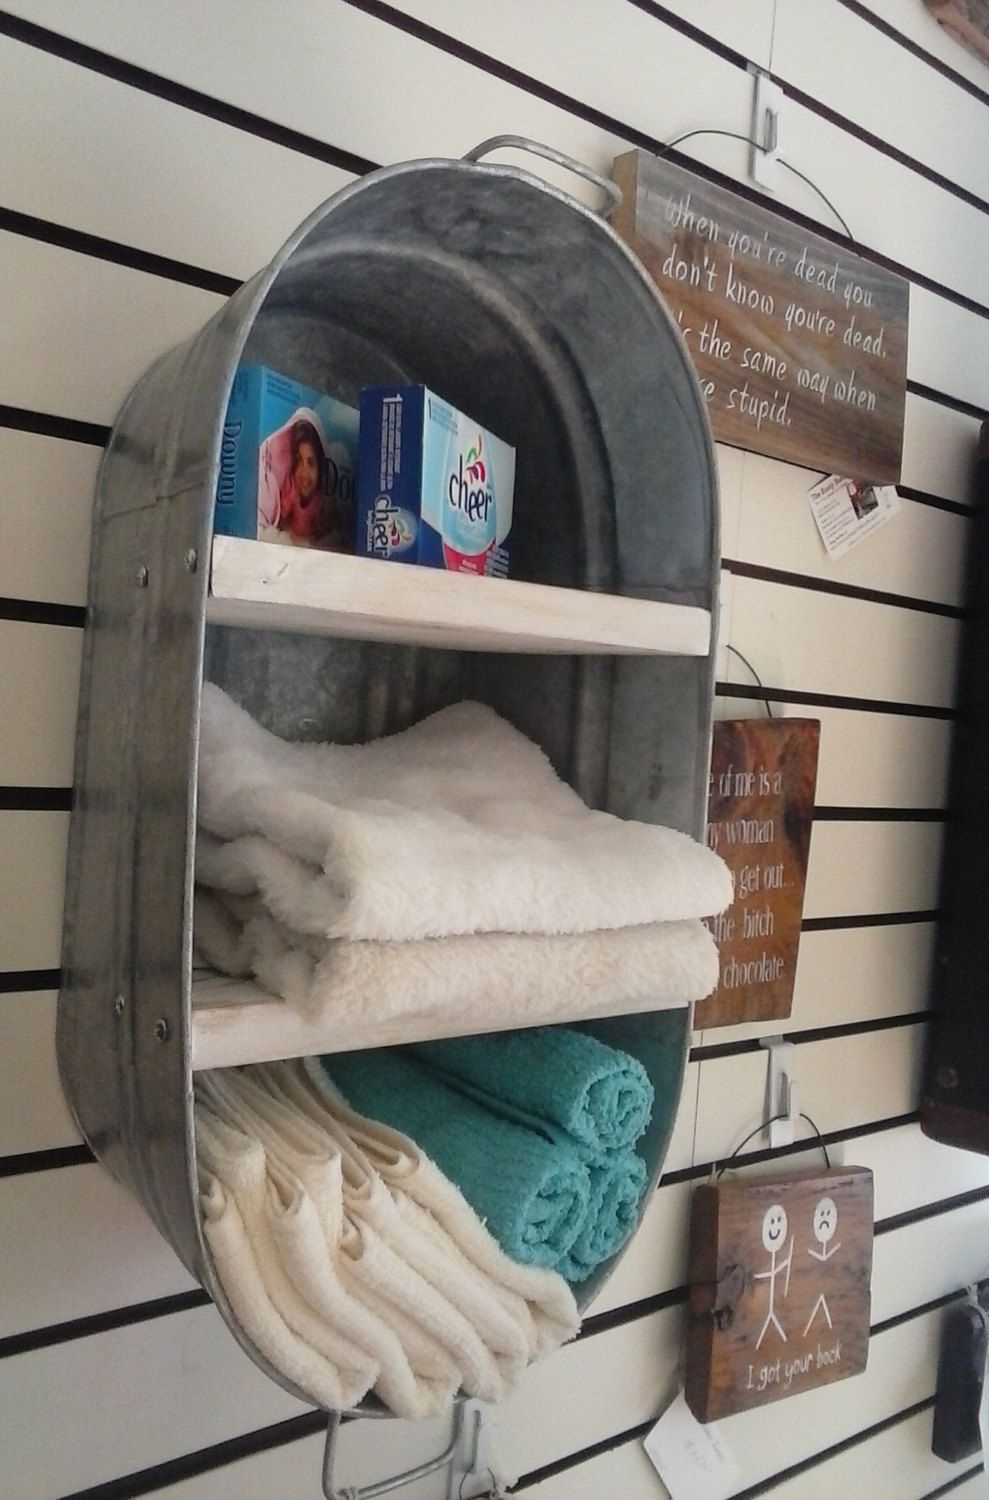 Washtub Bucket Upcycled Hanging Wall Shelf Cupboard Towel within Farm Metal Wall Rack and 3 Tin Pot With Hanger Wall Decor (Image 29 of 30)